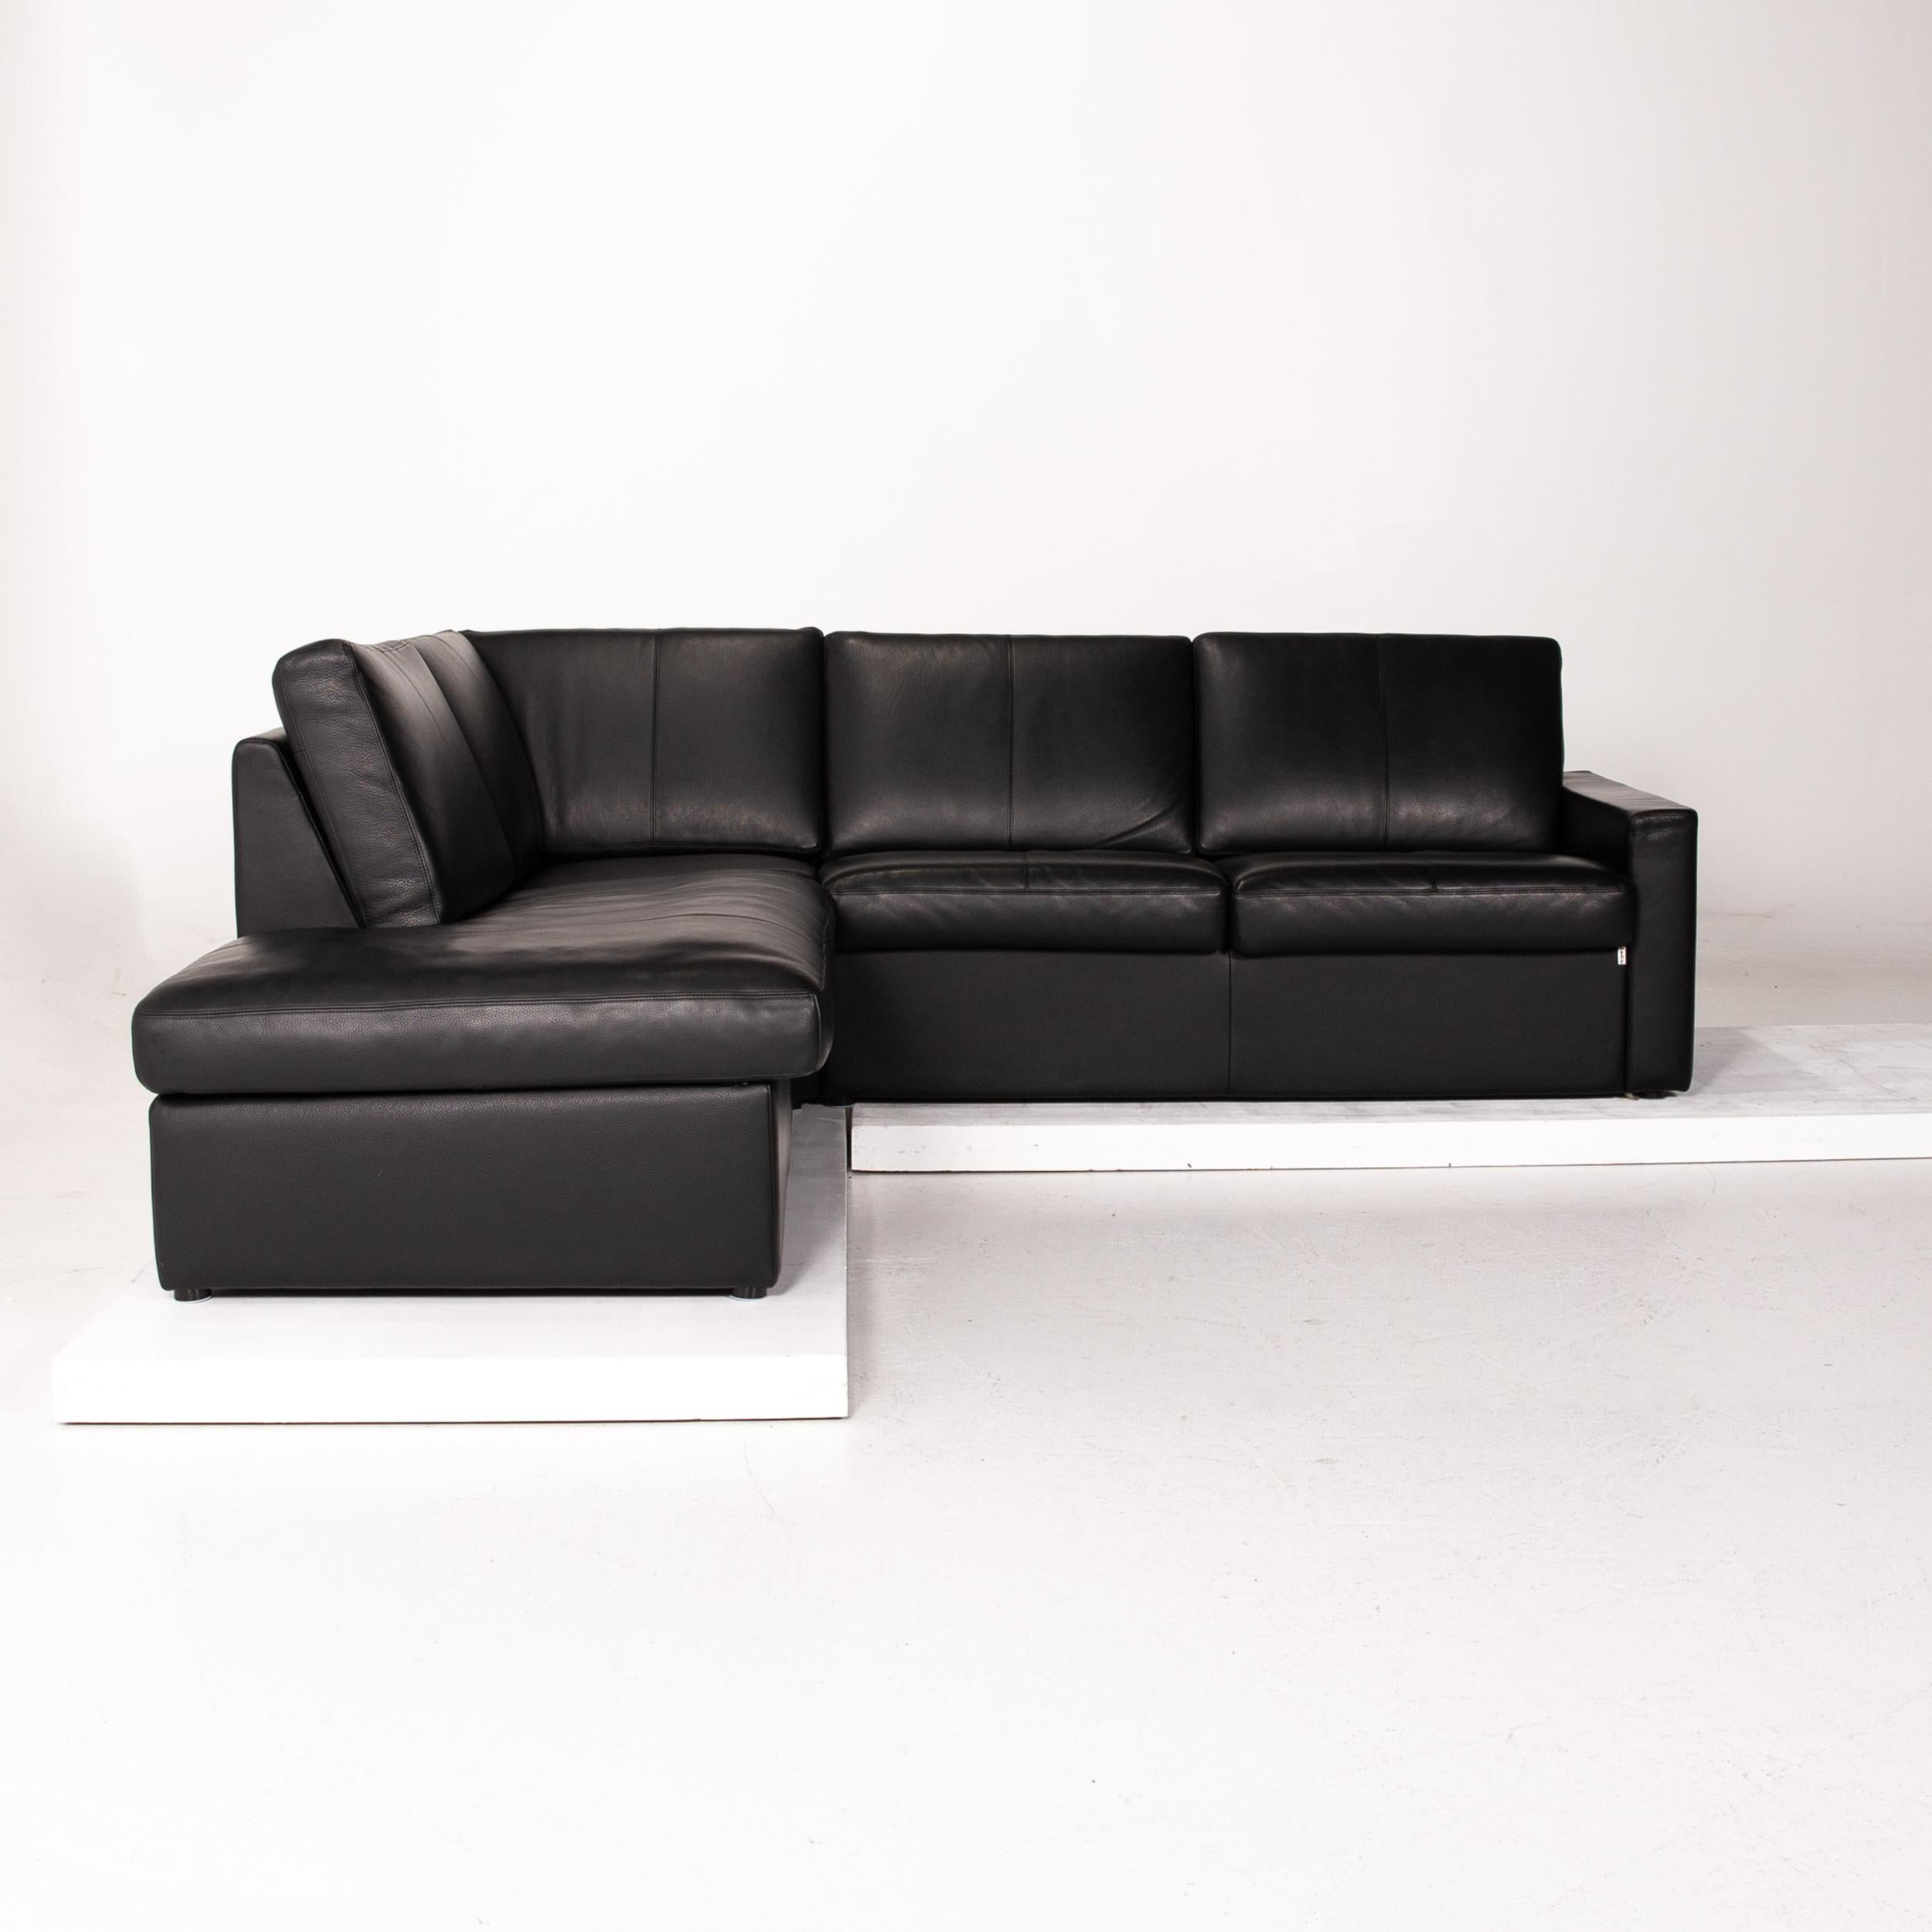 Erpo Cl 150 Leather Corner Sofa Black Function Sofa Couch For Sale At 1stdibs